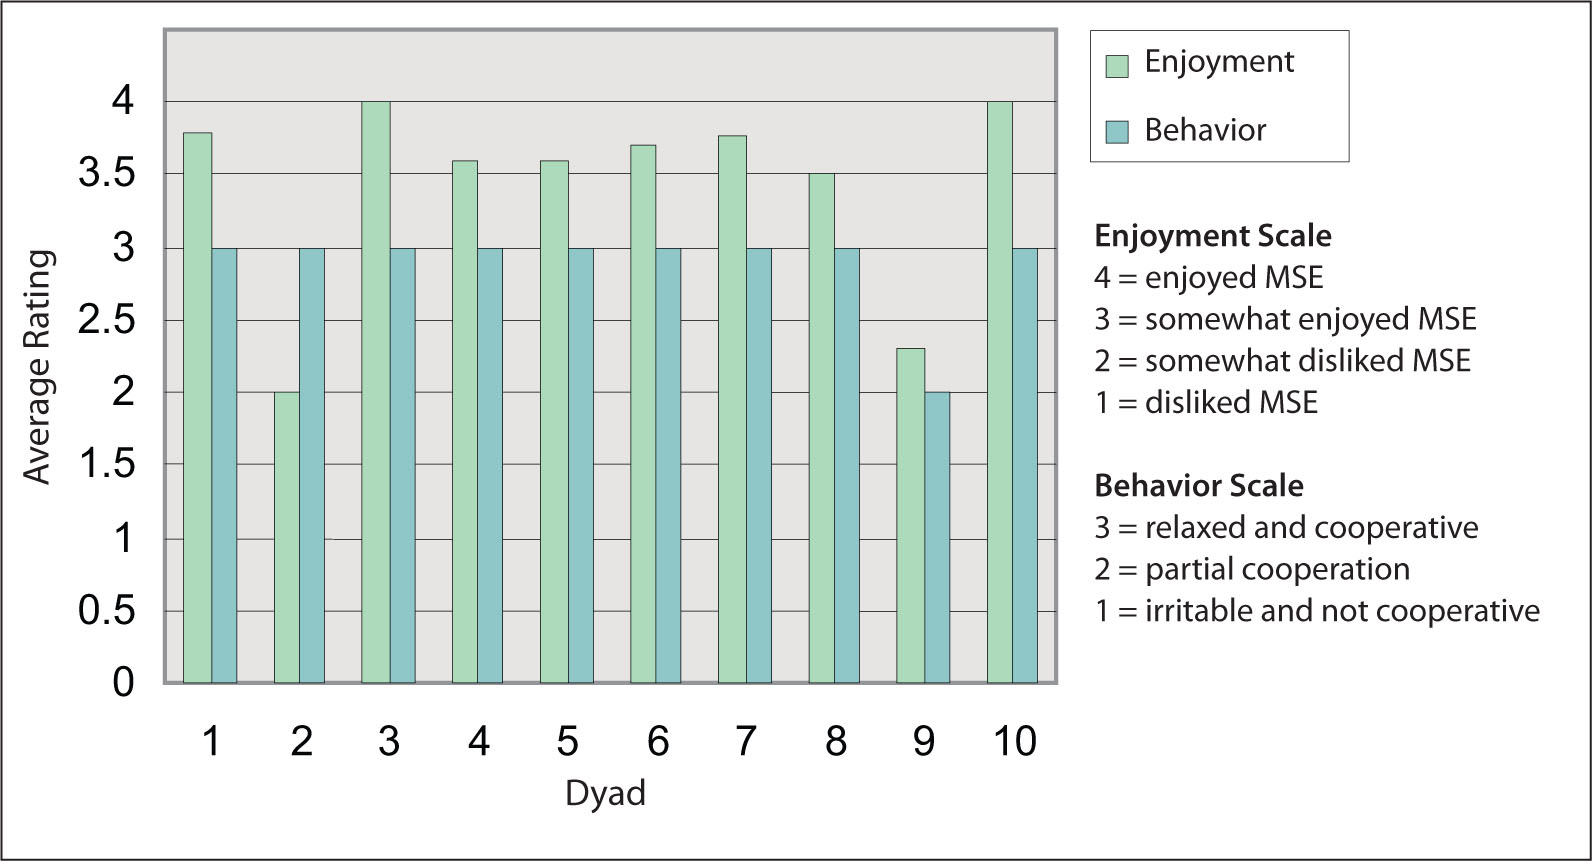 Caregivers' Ratings of the Average Enjoyment of the Person with Dementia in the Multisensory Environment (MSE).